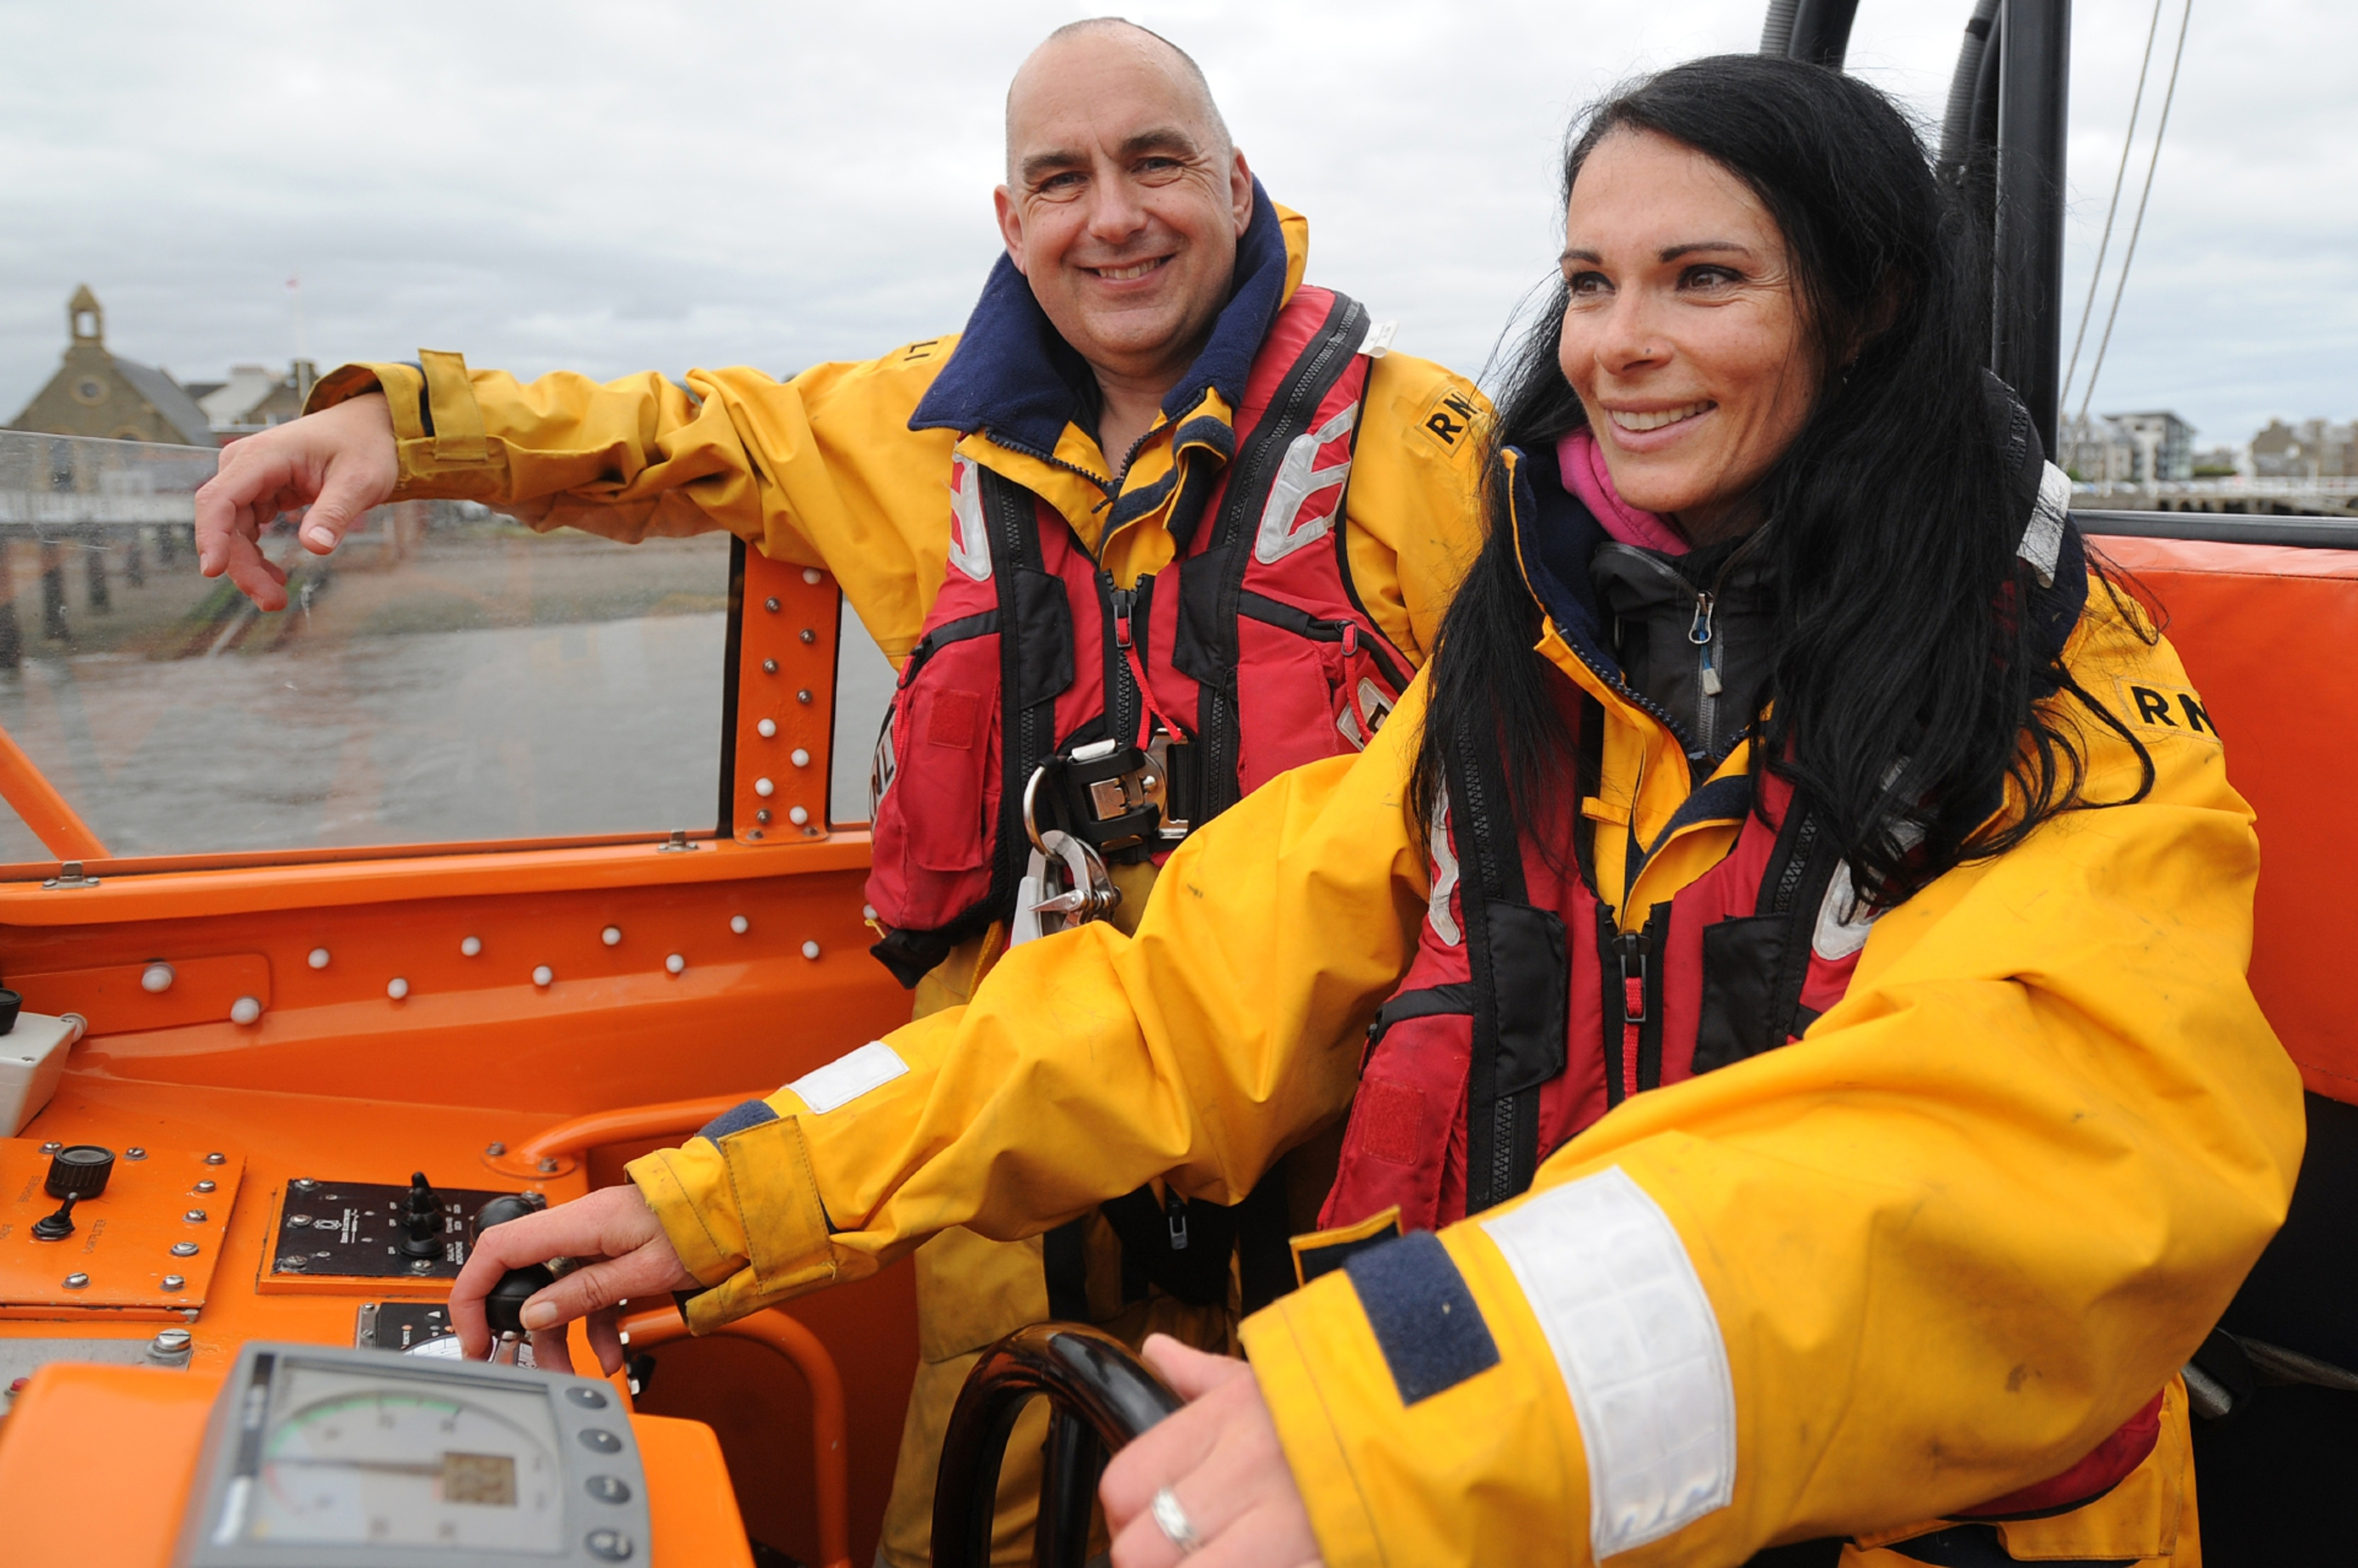 Broughty Ferry RNLI coxswain Murray Brown shows Gayle the ropes.